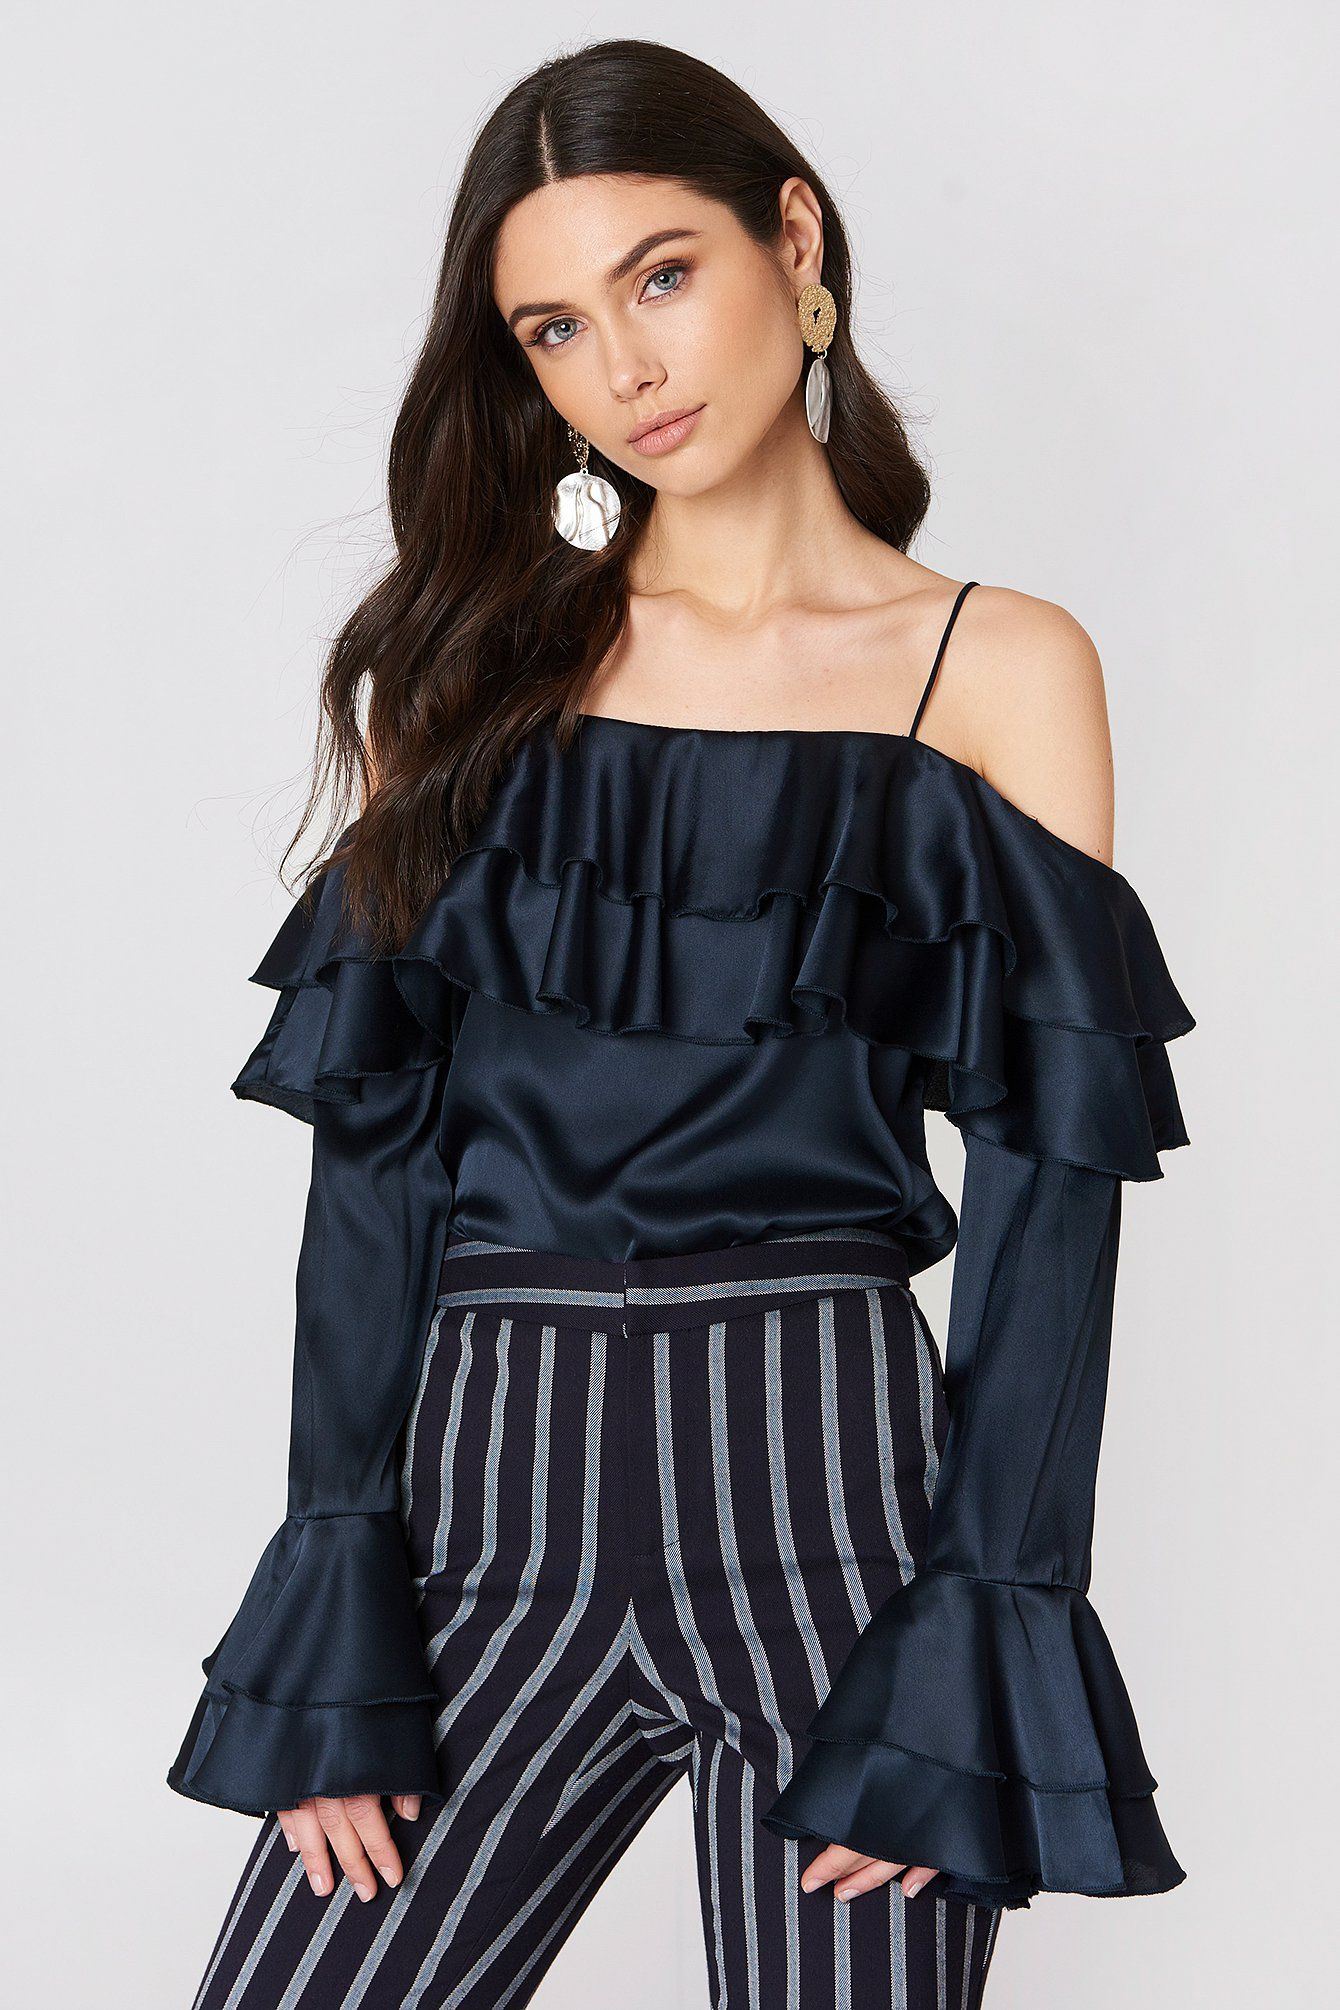 233c2f608a53d The Off Shoulder Double Flounce Top by NA-KD Party features a cold shoulder  design